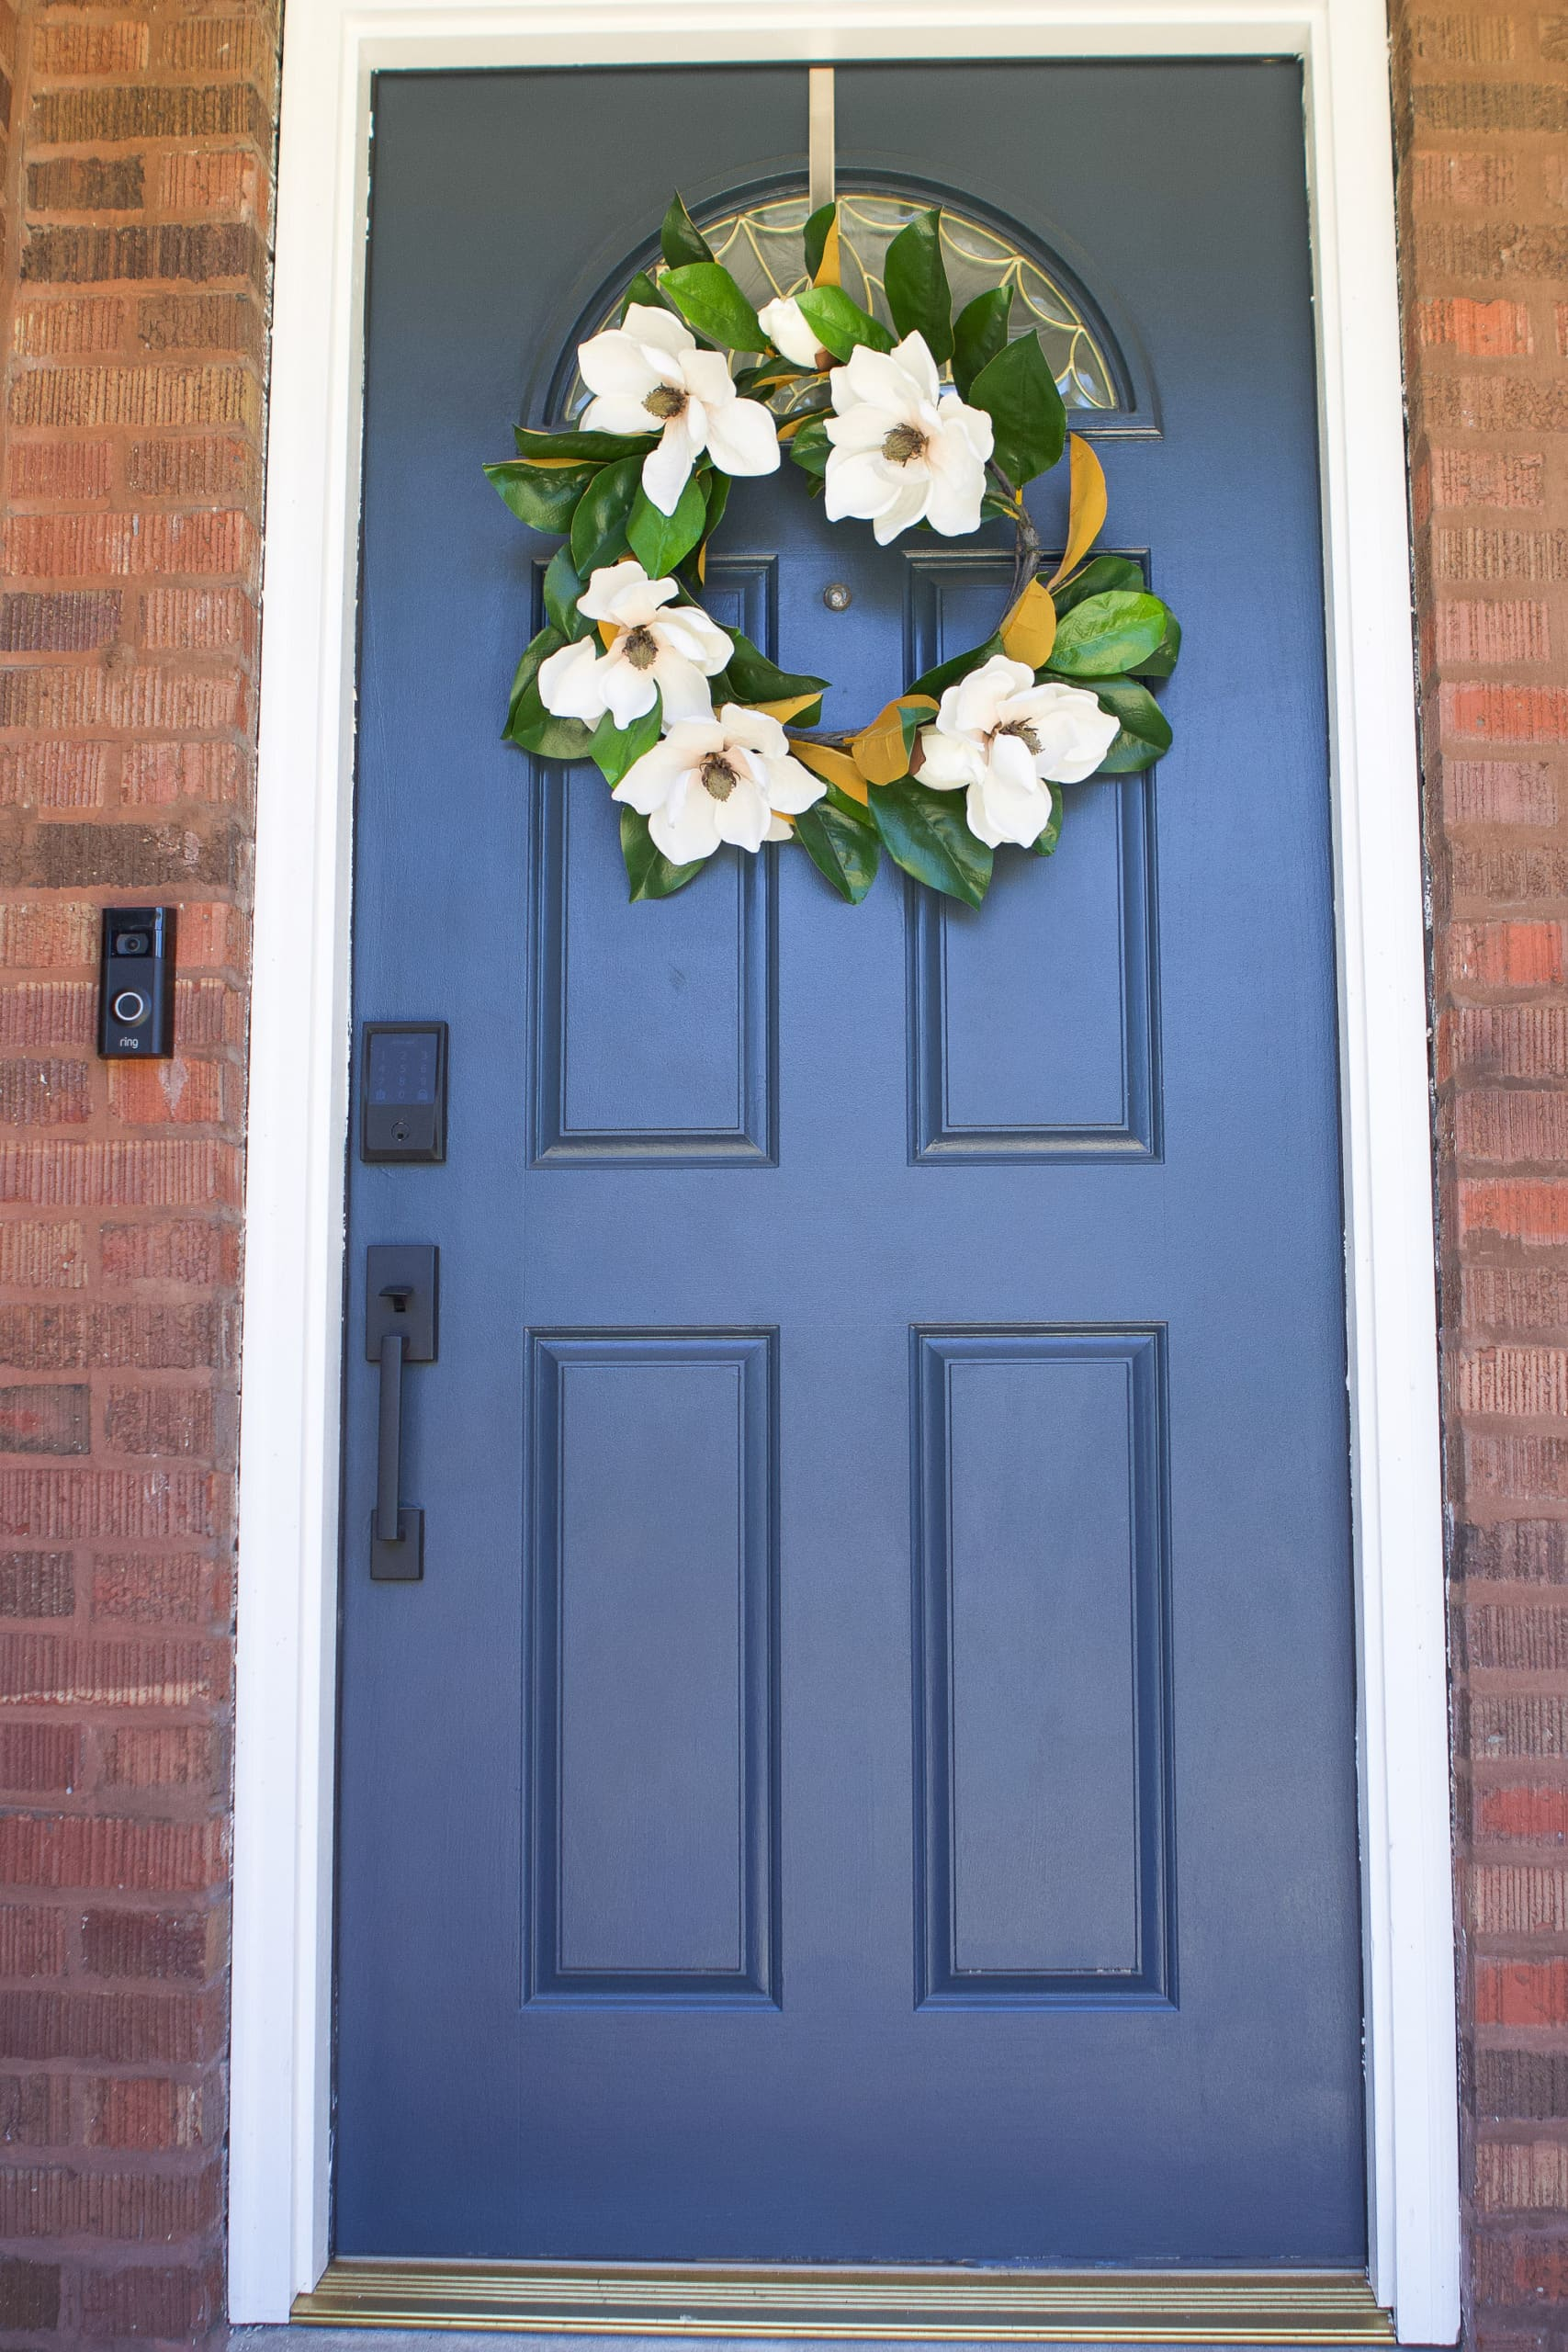 Our blue front door